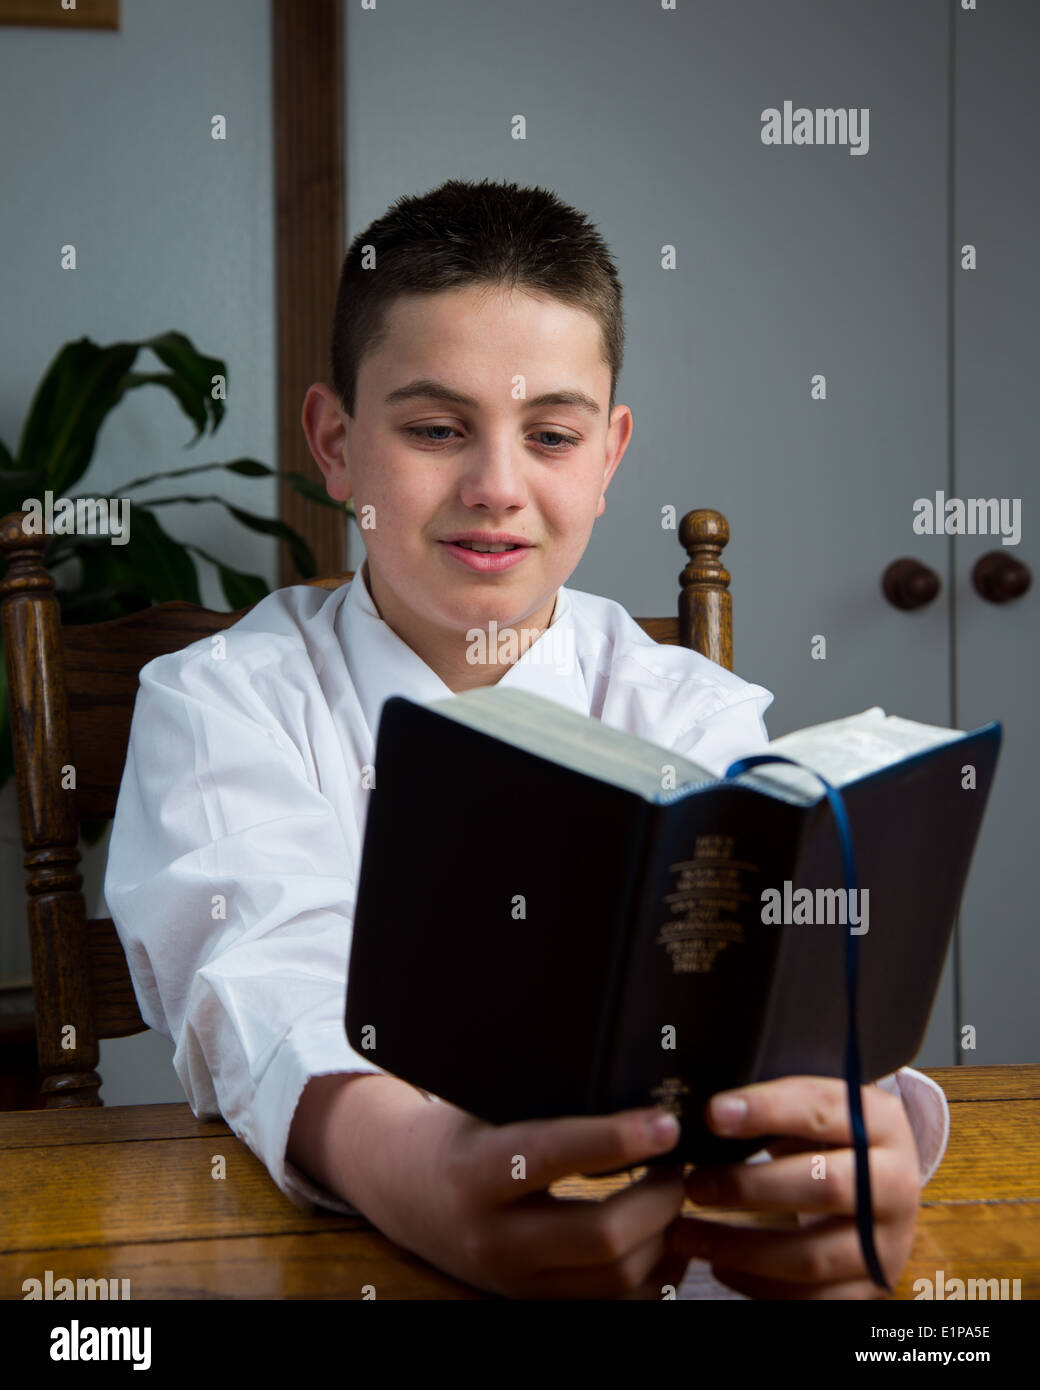 A young boy studying the scriptures. - Stock Image